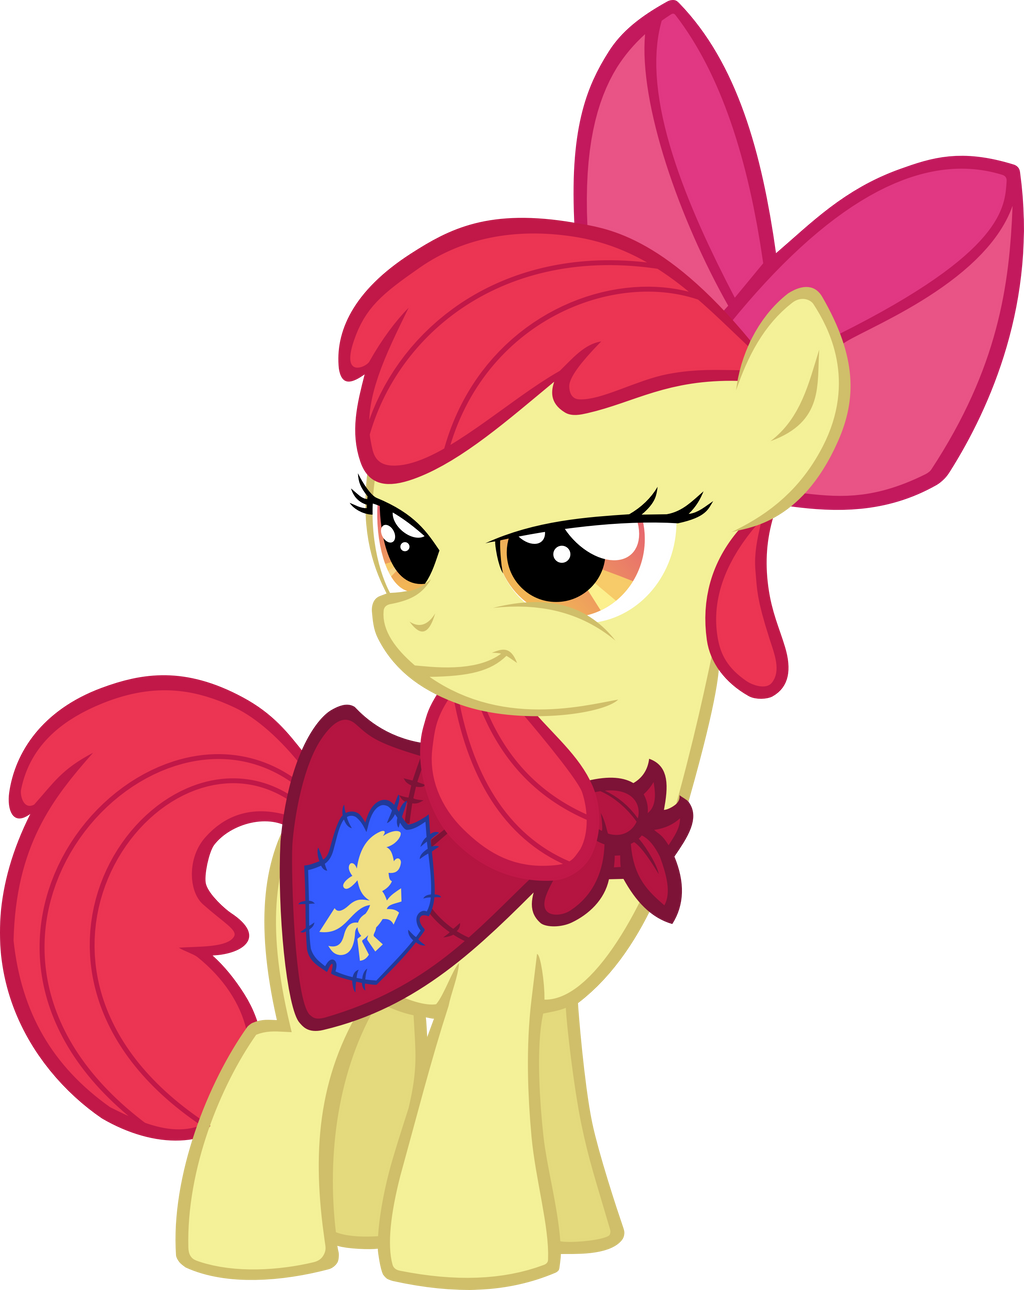 Apple Bloom the Cutie Mark Crusader by RatchetHuN